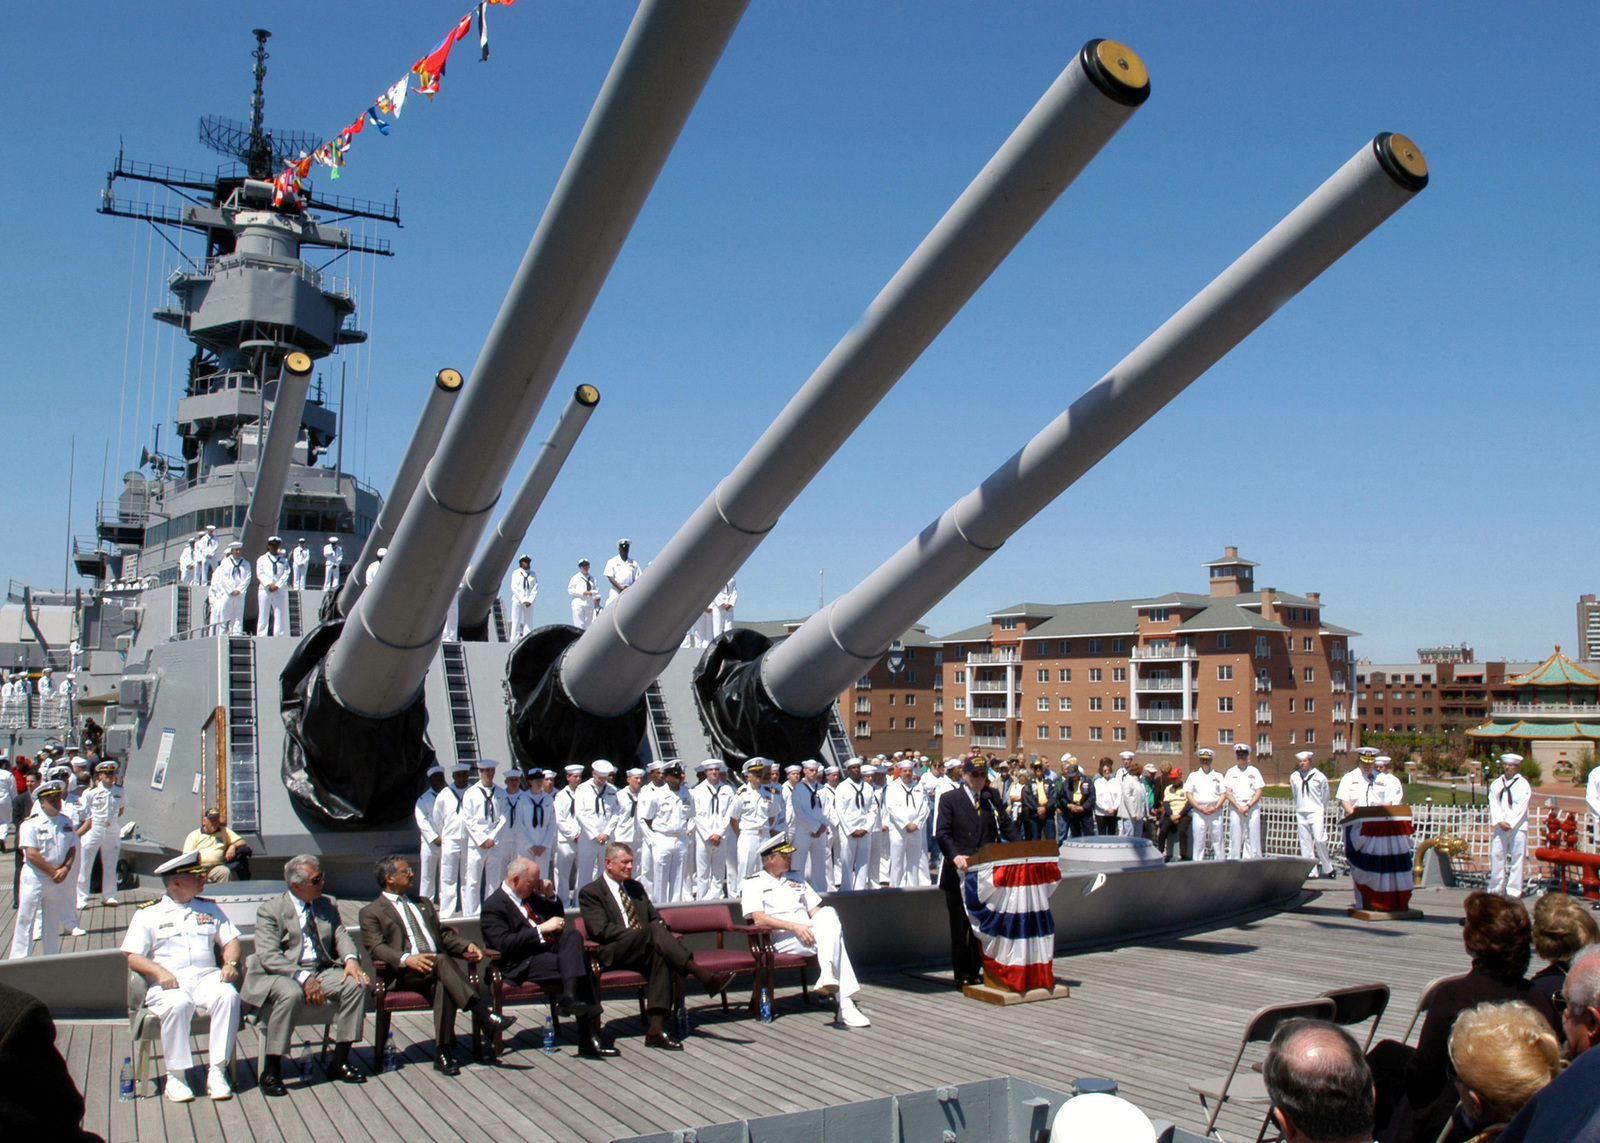 US Senator, The Honorable John Warner, (R-VA) (center), stands beneath the 16-inch guns on the deck of the decommissioned US Navy (USN) Battleship, WINCONSIN (BB 64), and addressed the gathering during a 60th Anniversary Celebration held at Hampton Roads Naval Museum, Norfolk Virginia (VA). Seated to his immediate right is USN Rear Admiral (RADM) (lower-half) Stephen Turcotte, Commander, Mid-Atlantic Region